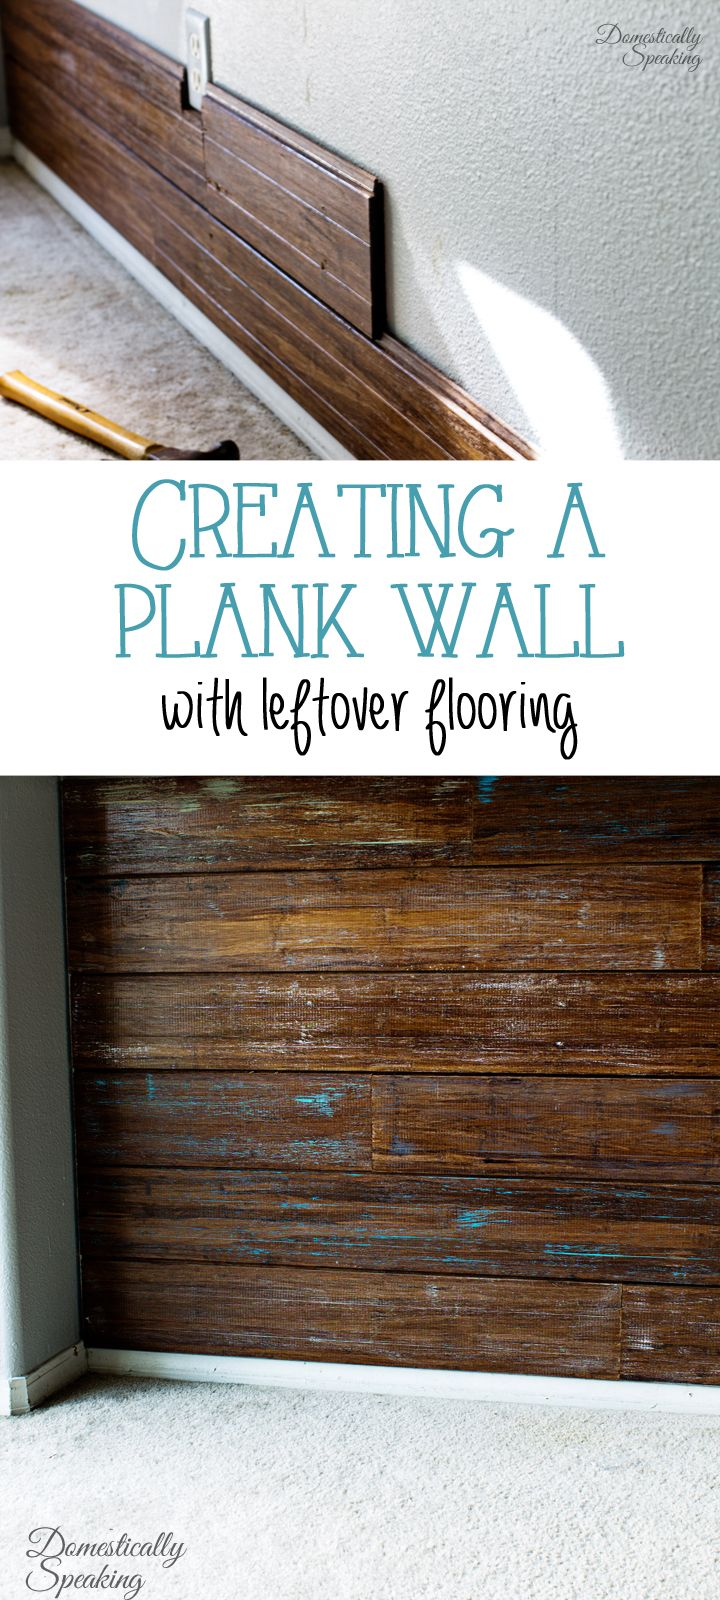 Creating a Plank Wall with Leftover Flooring Love the dry brush painting to add a pop of color!